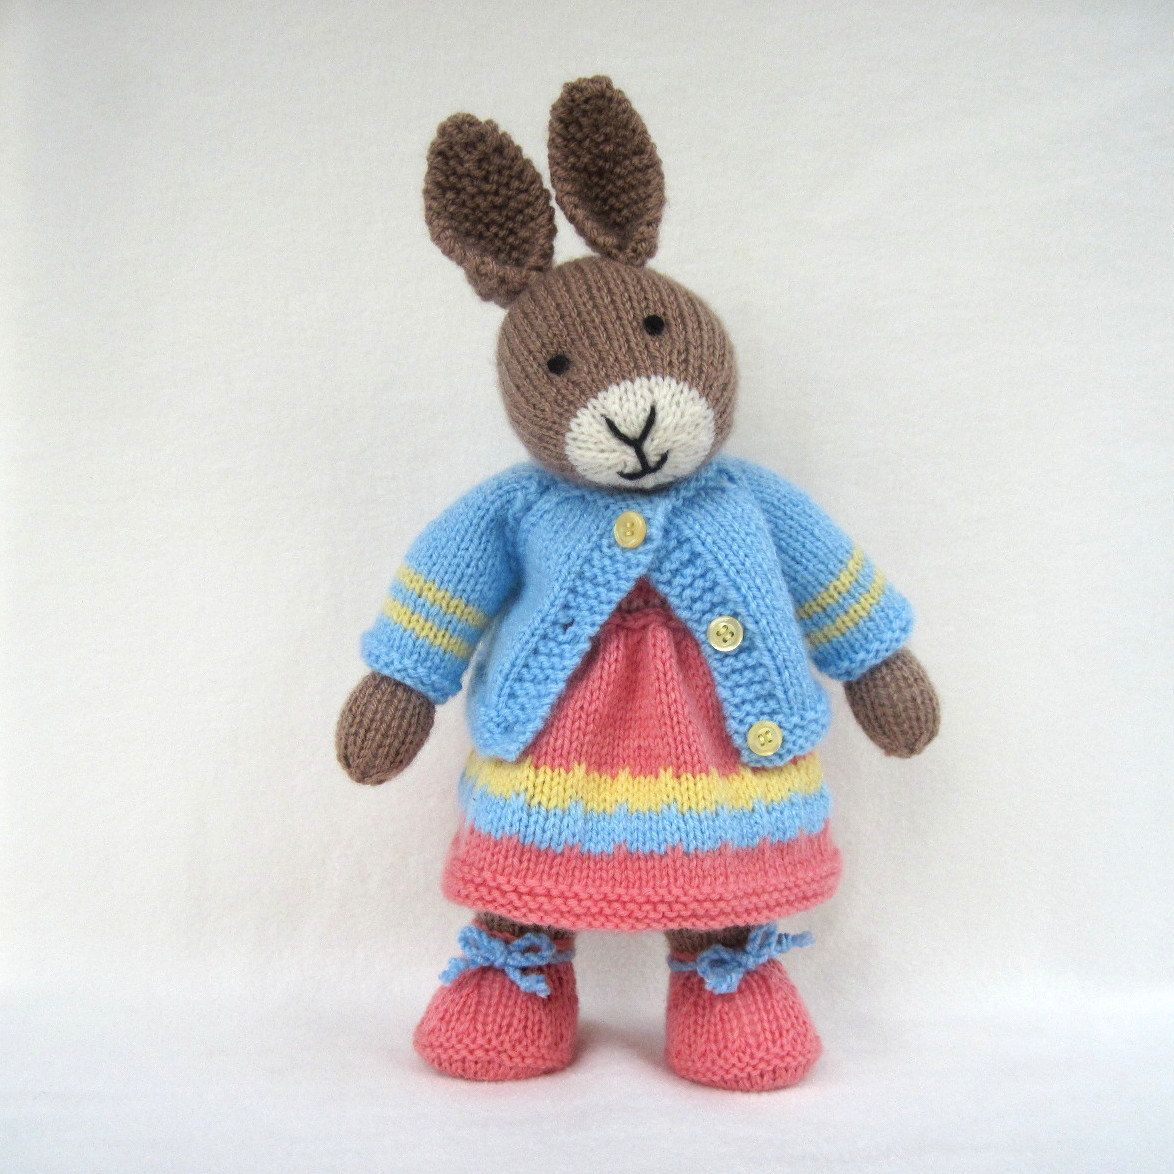 Mother Bunny - knitted toy rabbit doll - INSTANT DOWNLOAD - PDF email knittin...